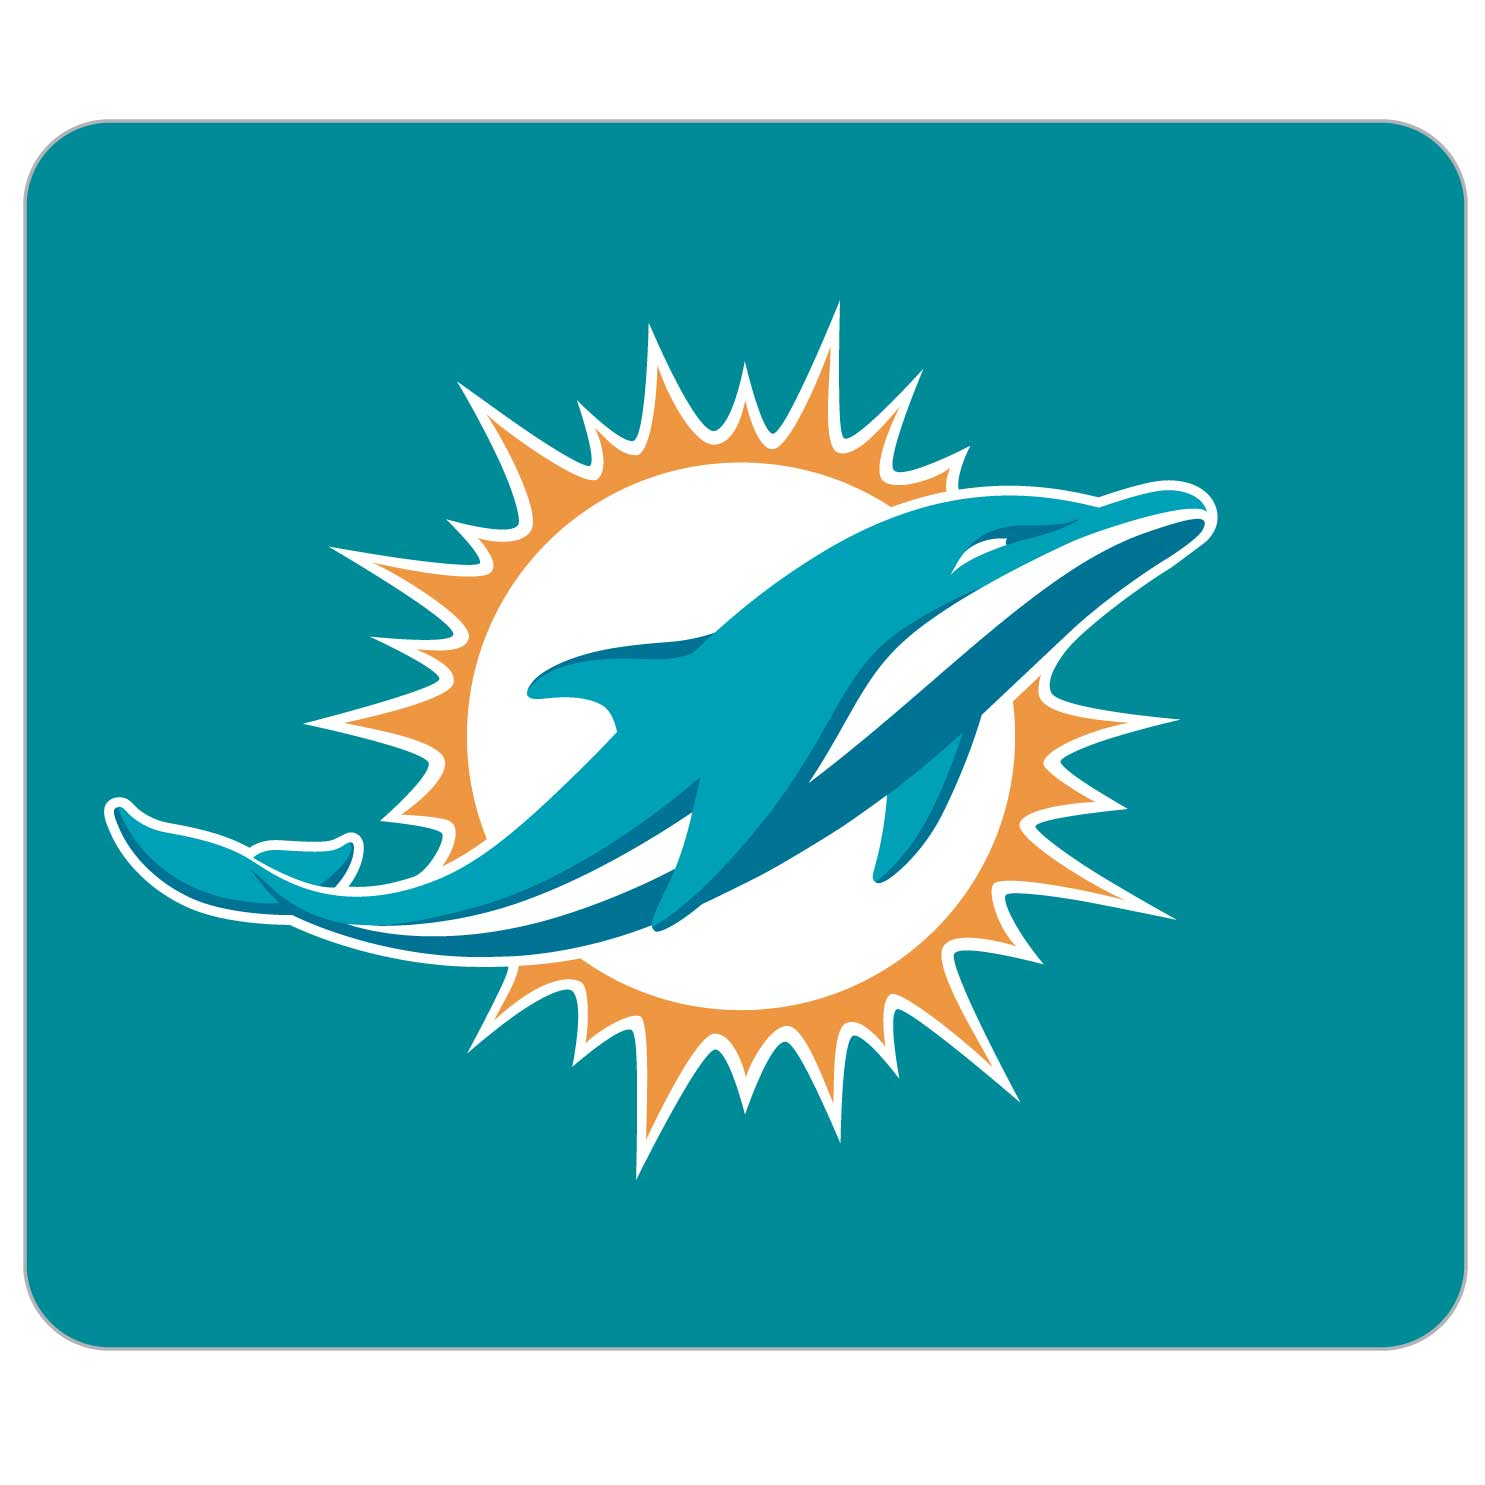 "NFL Mouse Pad - Miami Dolphins - Our quality NFL mouse pad features a silk screened Miami Dolphins logo. 8"" x 7"" Officially licensed NFL product Licensee: Siskiyou Buckle .com"